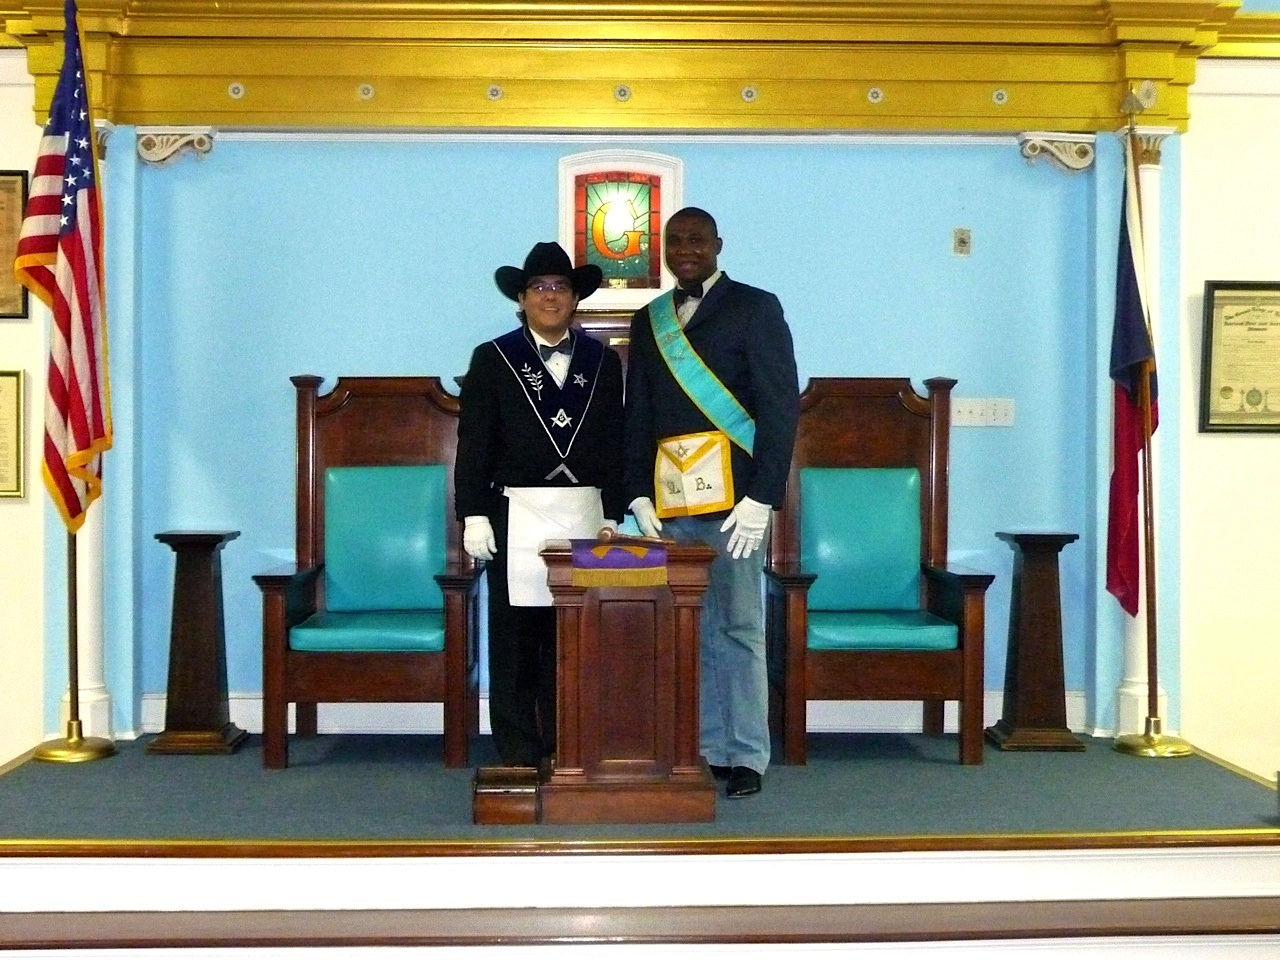 A photo of me (in cowboy hat) as Master of Merit Masonic Lodge No. 727 with a visiting Mason from Benin. Photo courtesy of James Rodriguez.